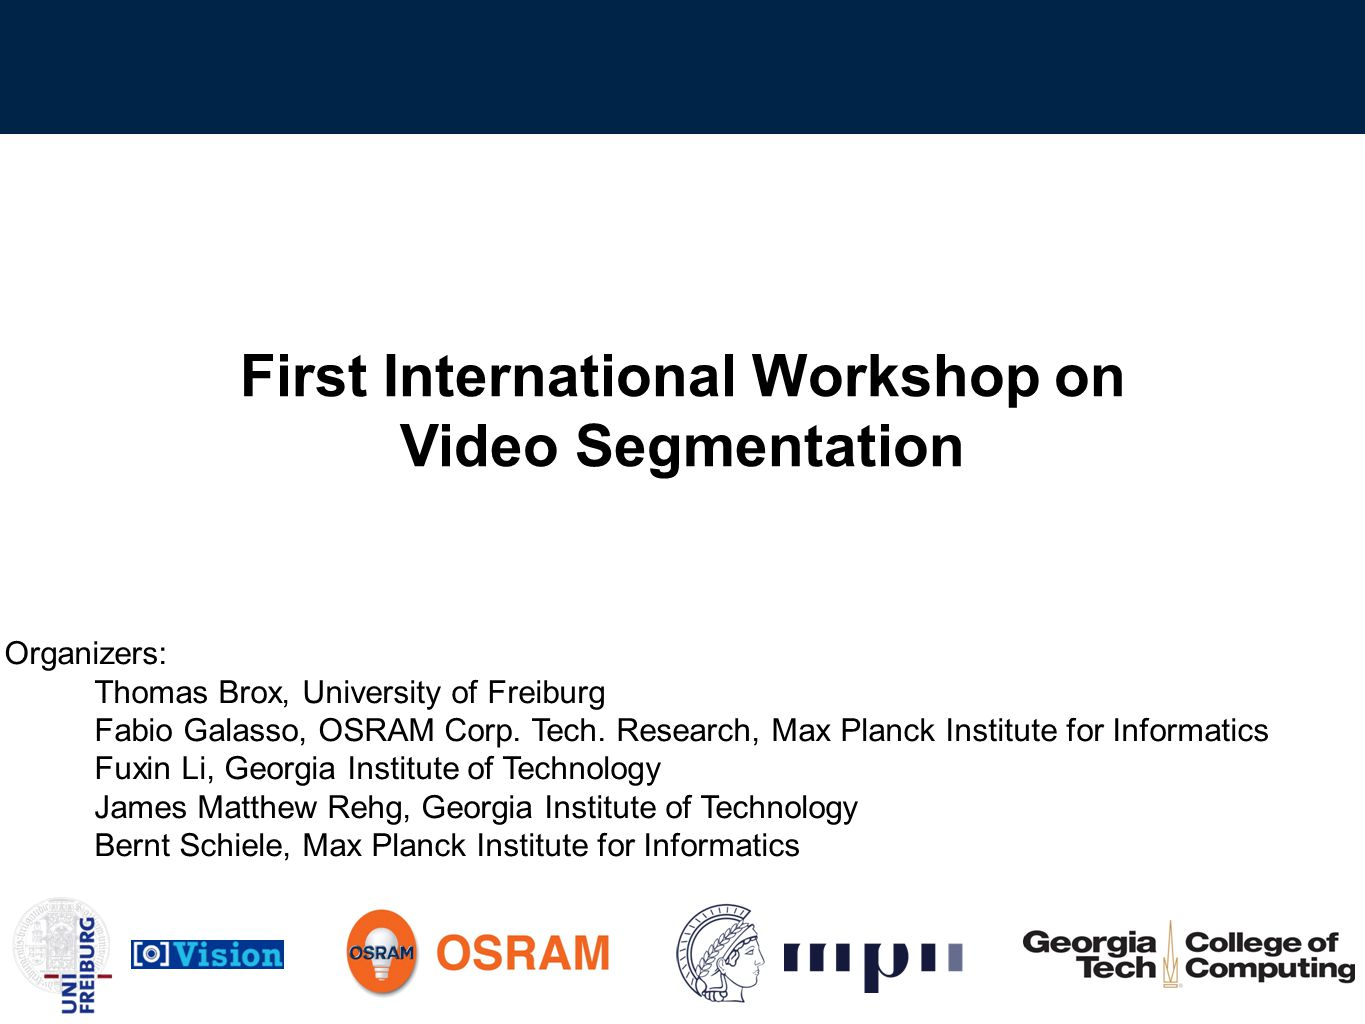 First International Workshop on Video Segmentation Organizers: Thomas Brox, University of Freiburg Fabio Galasso, OSRAM Corp. Tech. Research, Max Plan